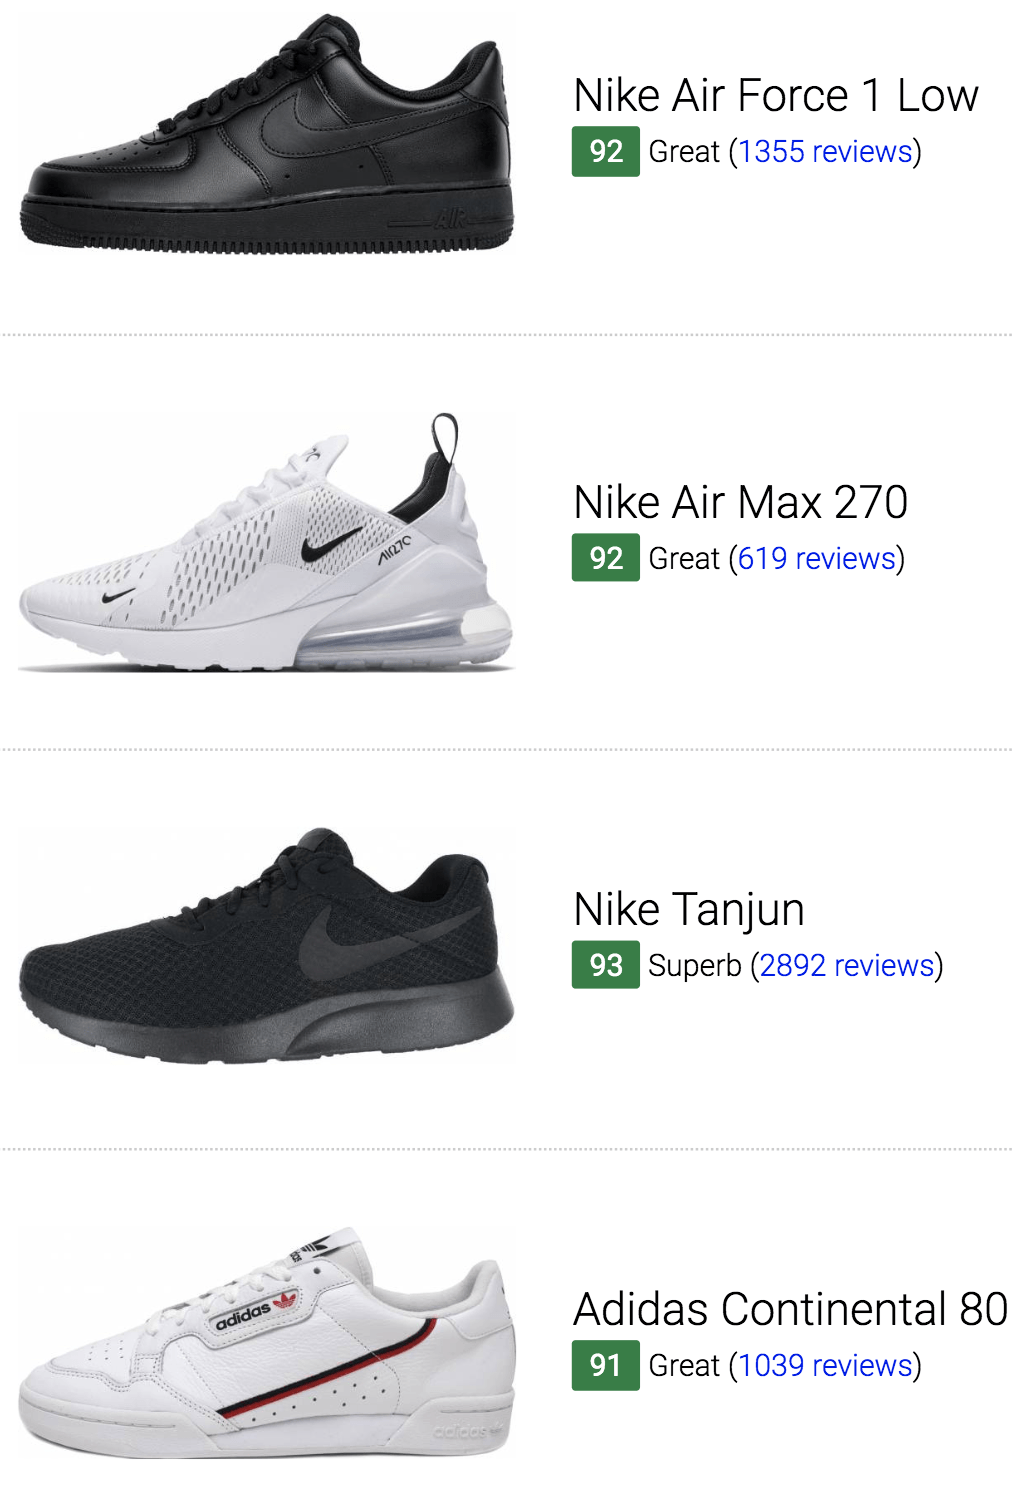 7b6236c383ffe 2737 Best Sneakers (June 2019) | RunRepeat